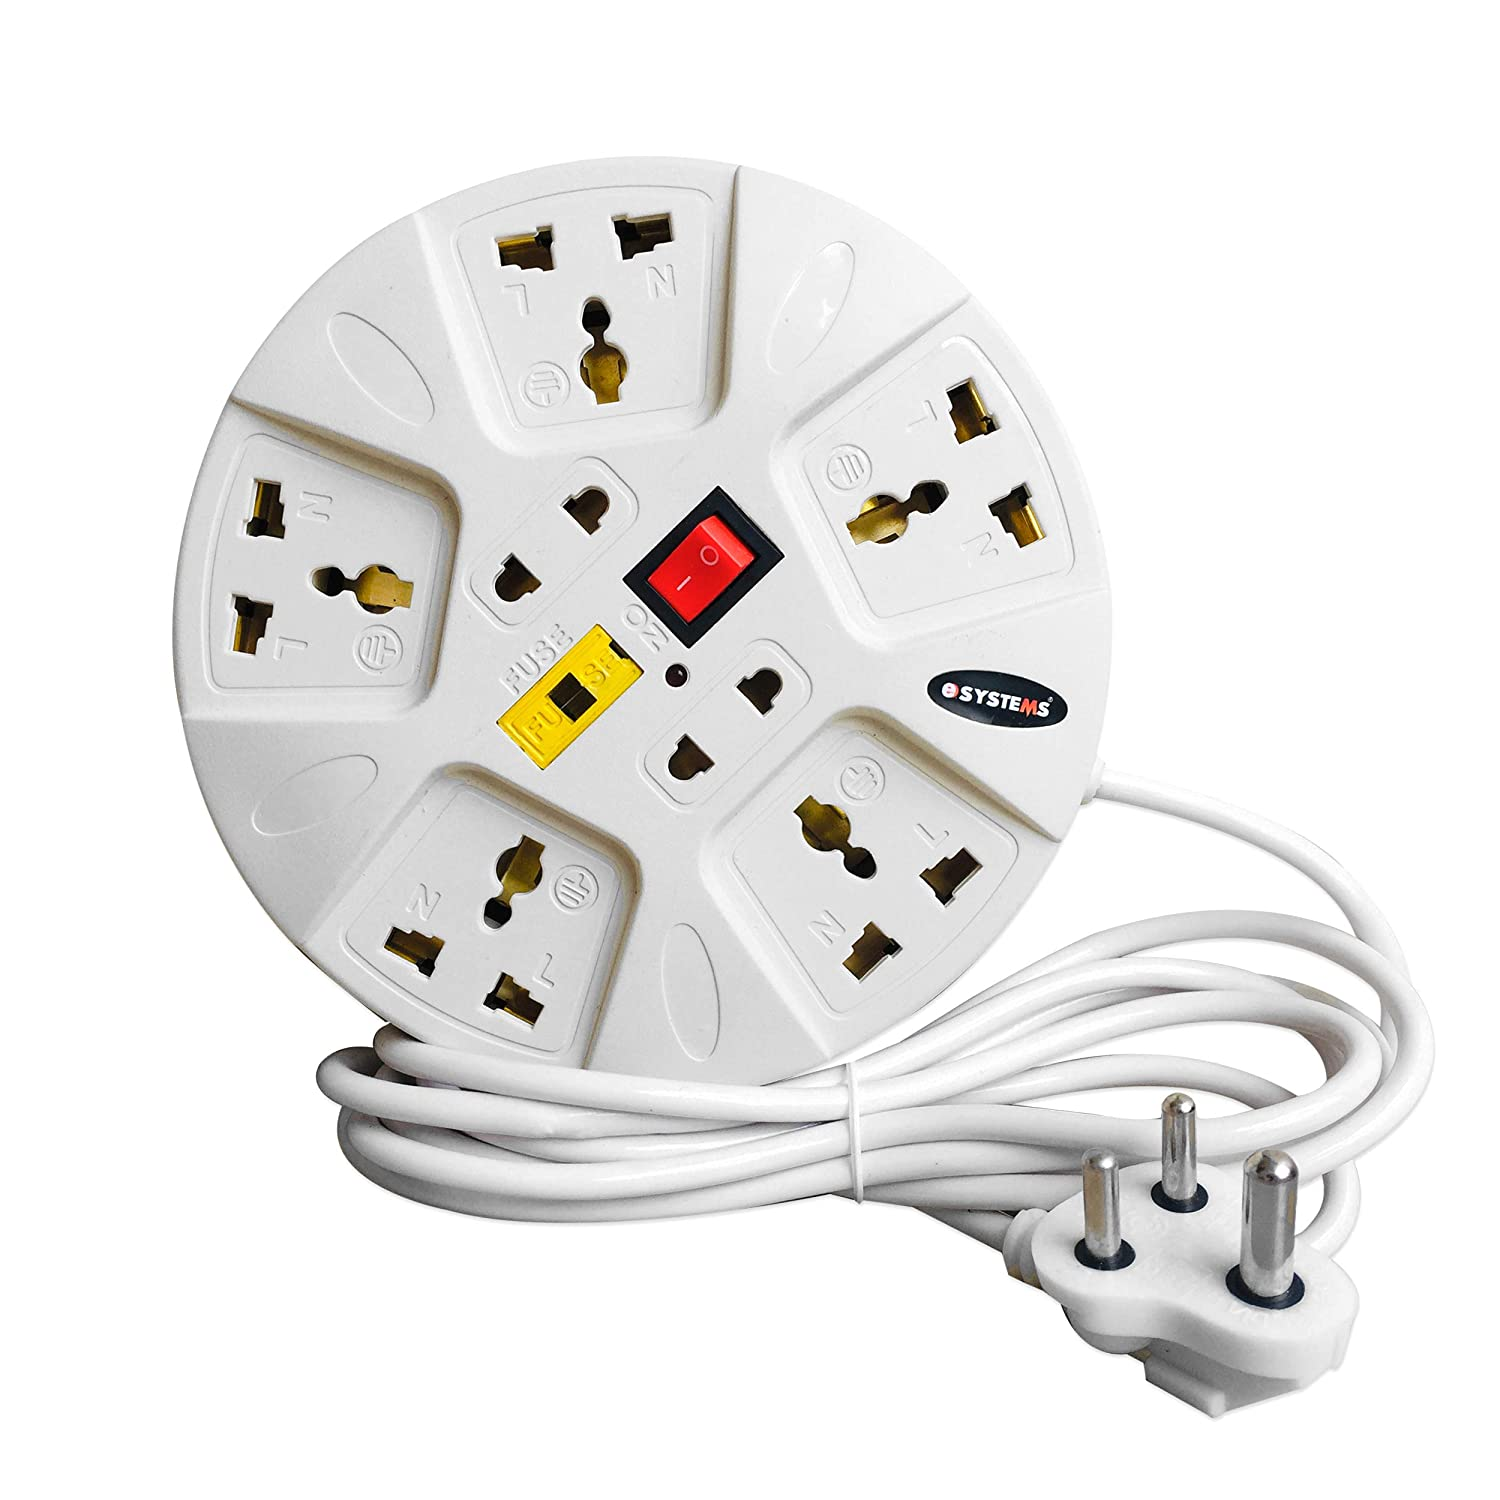 Surprising Buy Esystems 6 A Multi Plug Point Strip Extension Board White Wiring 101 Akebretraxxcnl